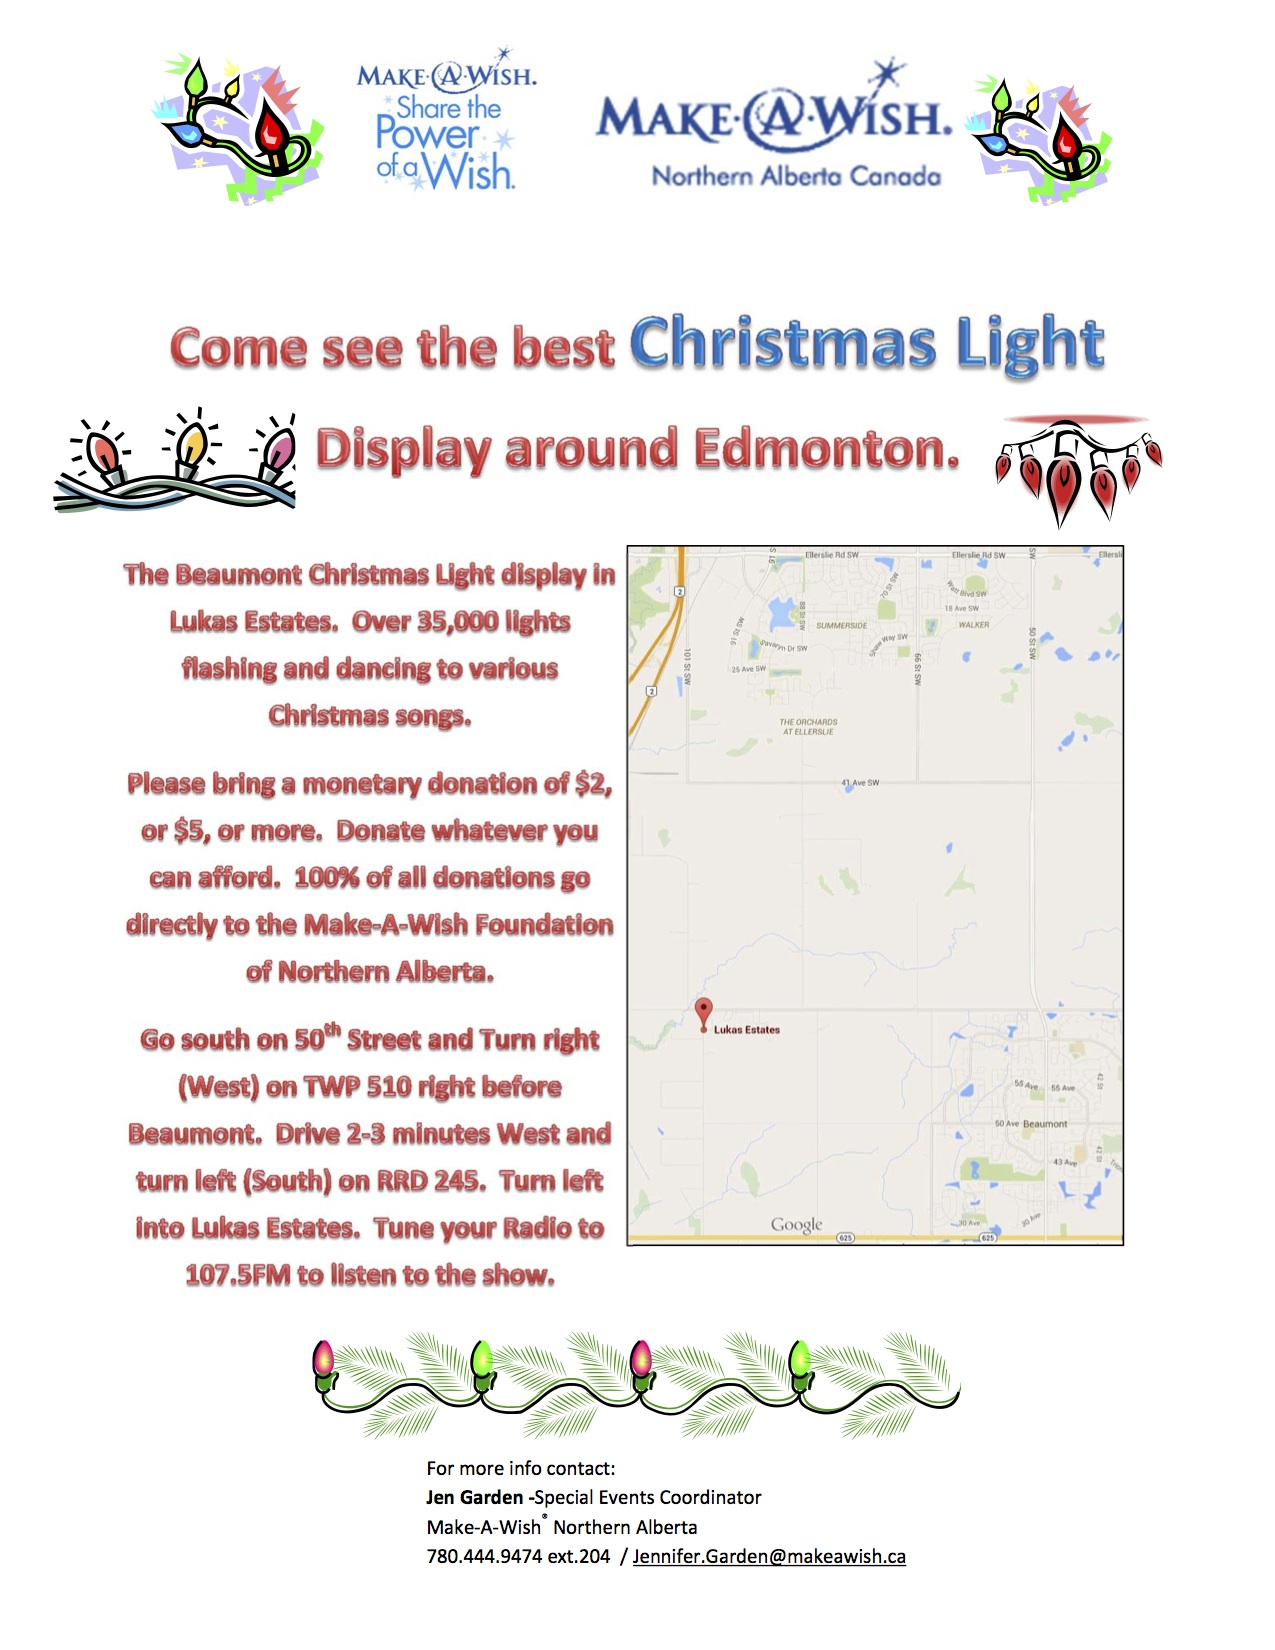 Help support the Make-A-Wish (Northern Alberta) Foundation - visit the Beaumont Christmas Light Display, created by Coach Bernard (Under 10 Girls 'X').